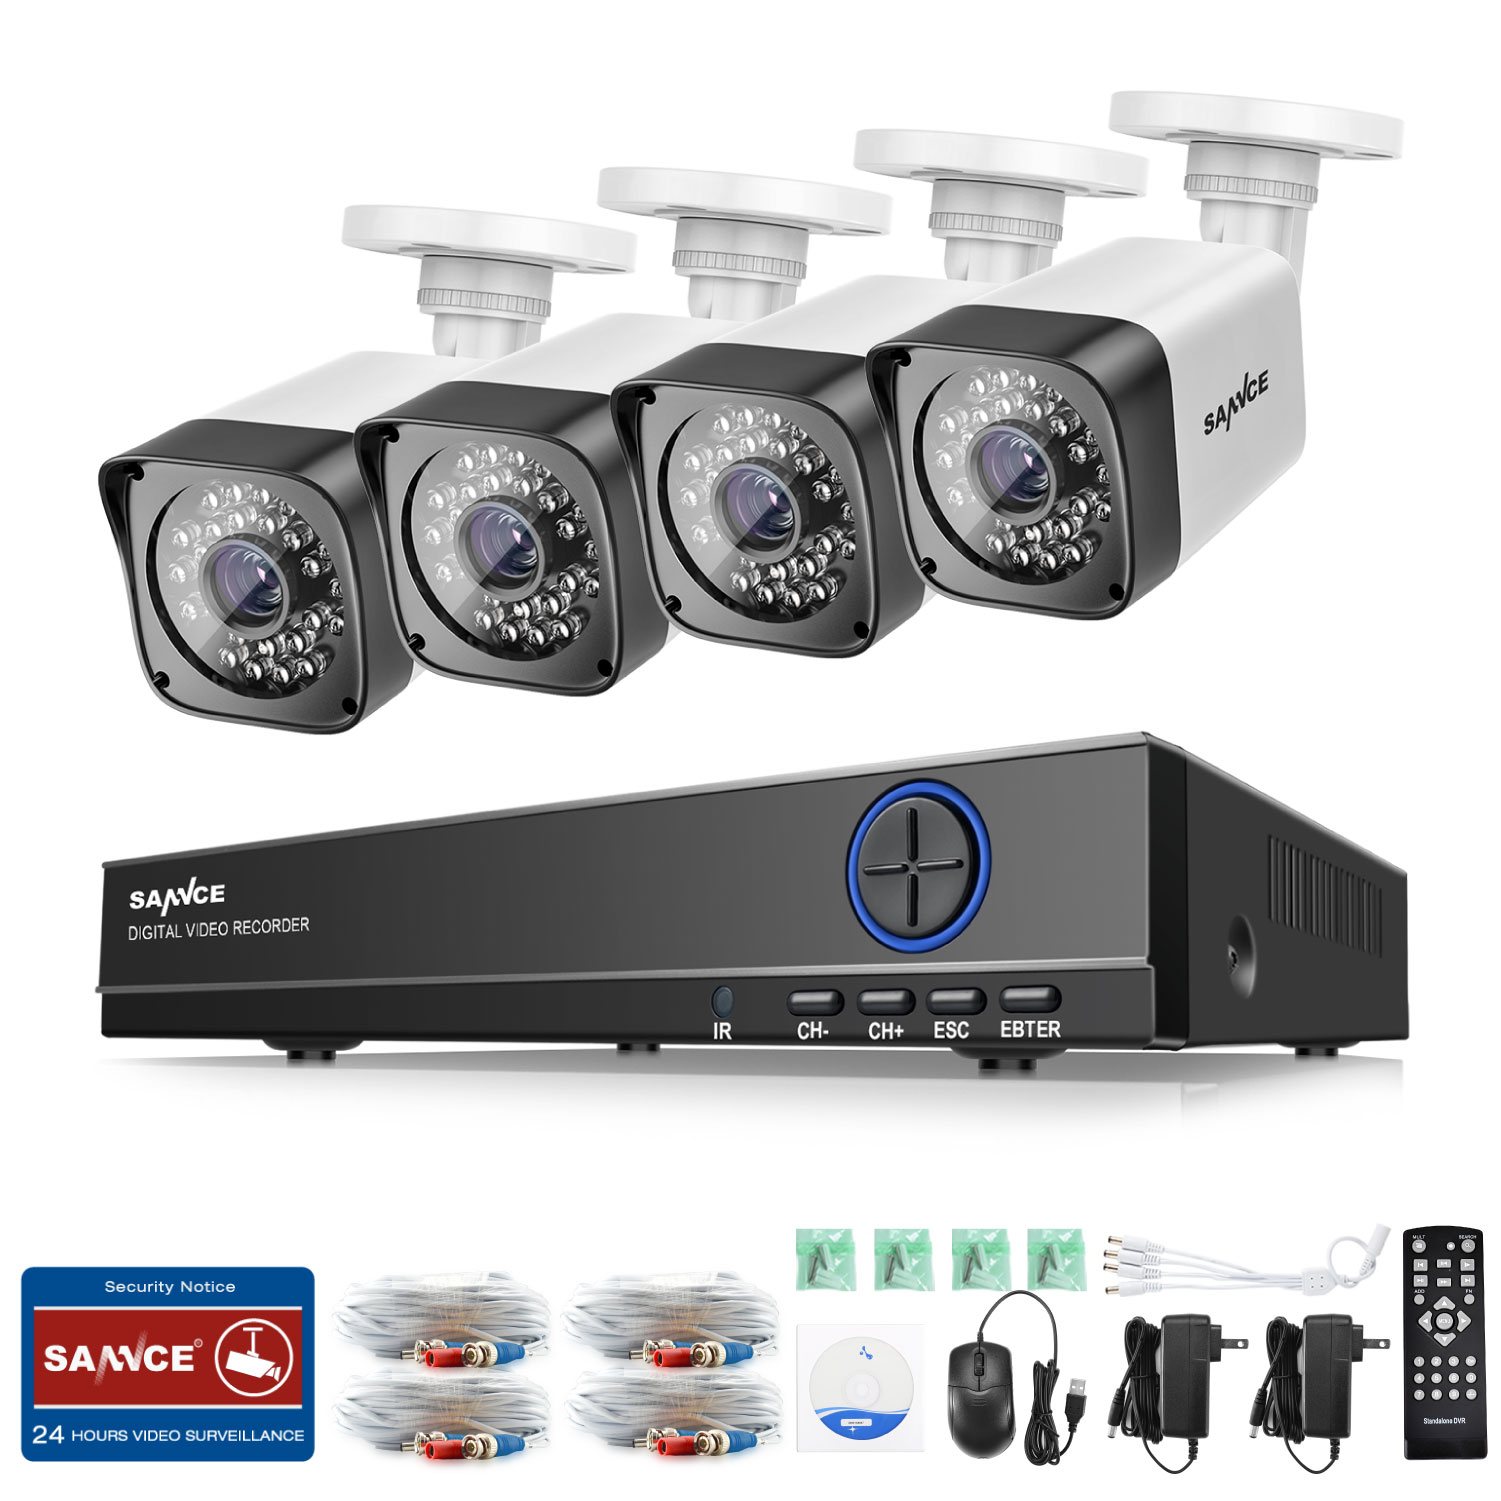 SANNCE 8CH CCTV System 4 in 1 DVR 4PCS 720P IR Weatherproof Outdoor Camera Home Security System Surveillance Kits zosi 8ch cctv system 8ch network tvi dvr 4pcs 1280tvl ir weatherproof home security camera system surveillance kits